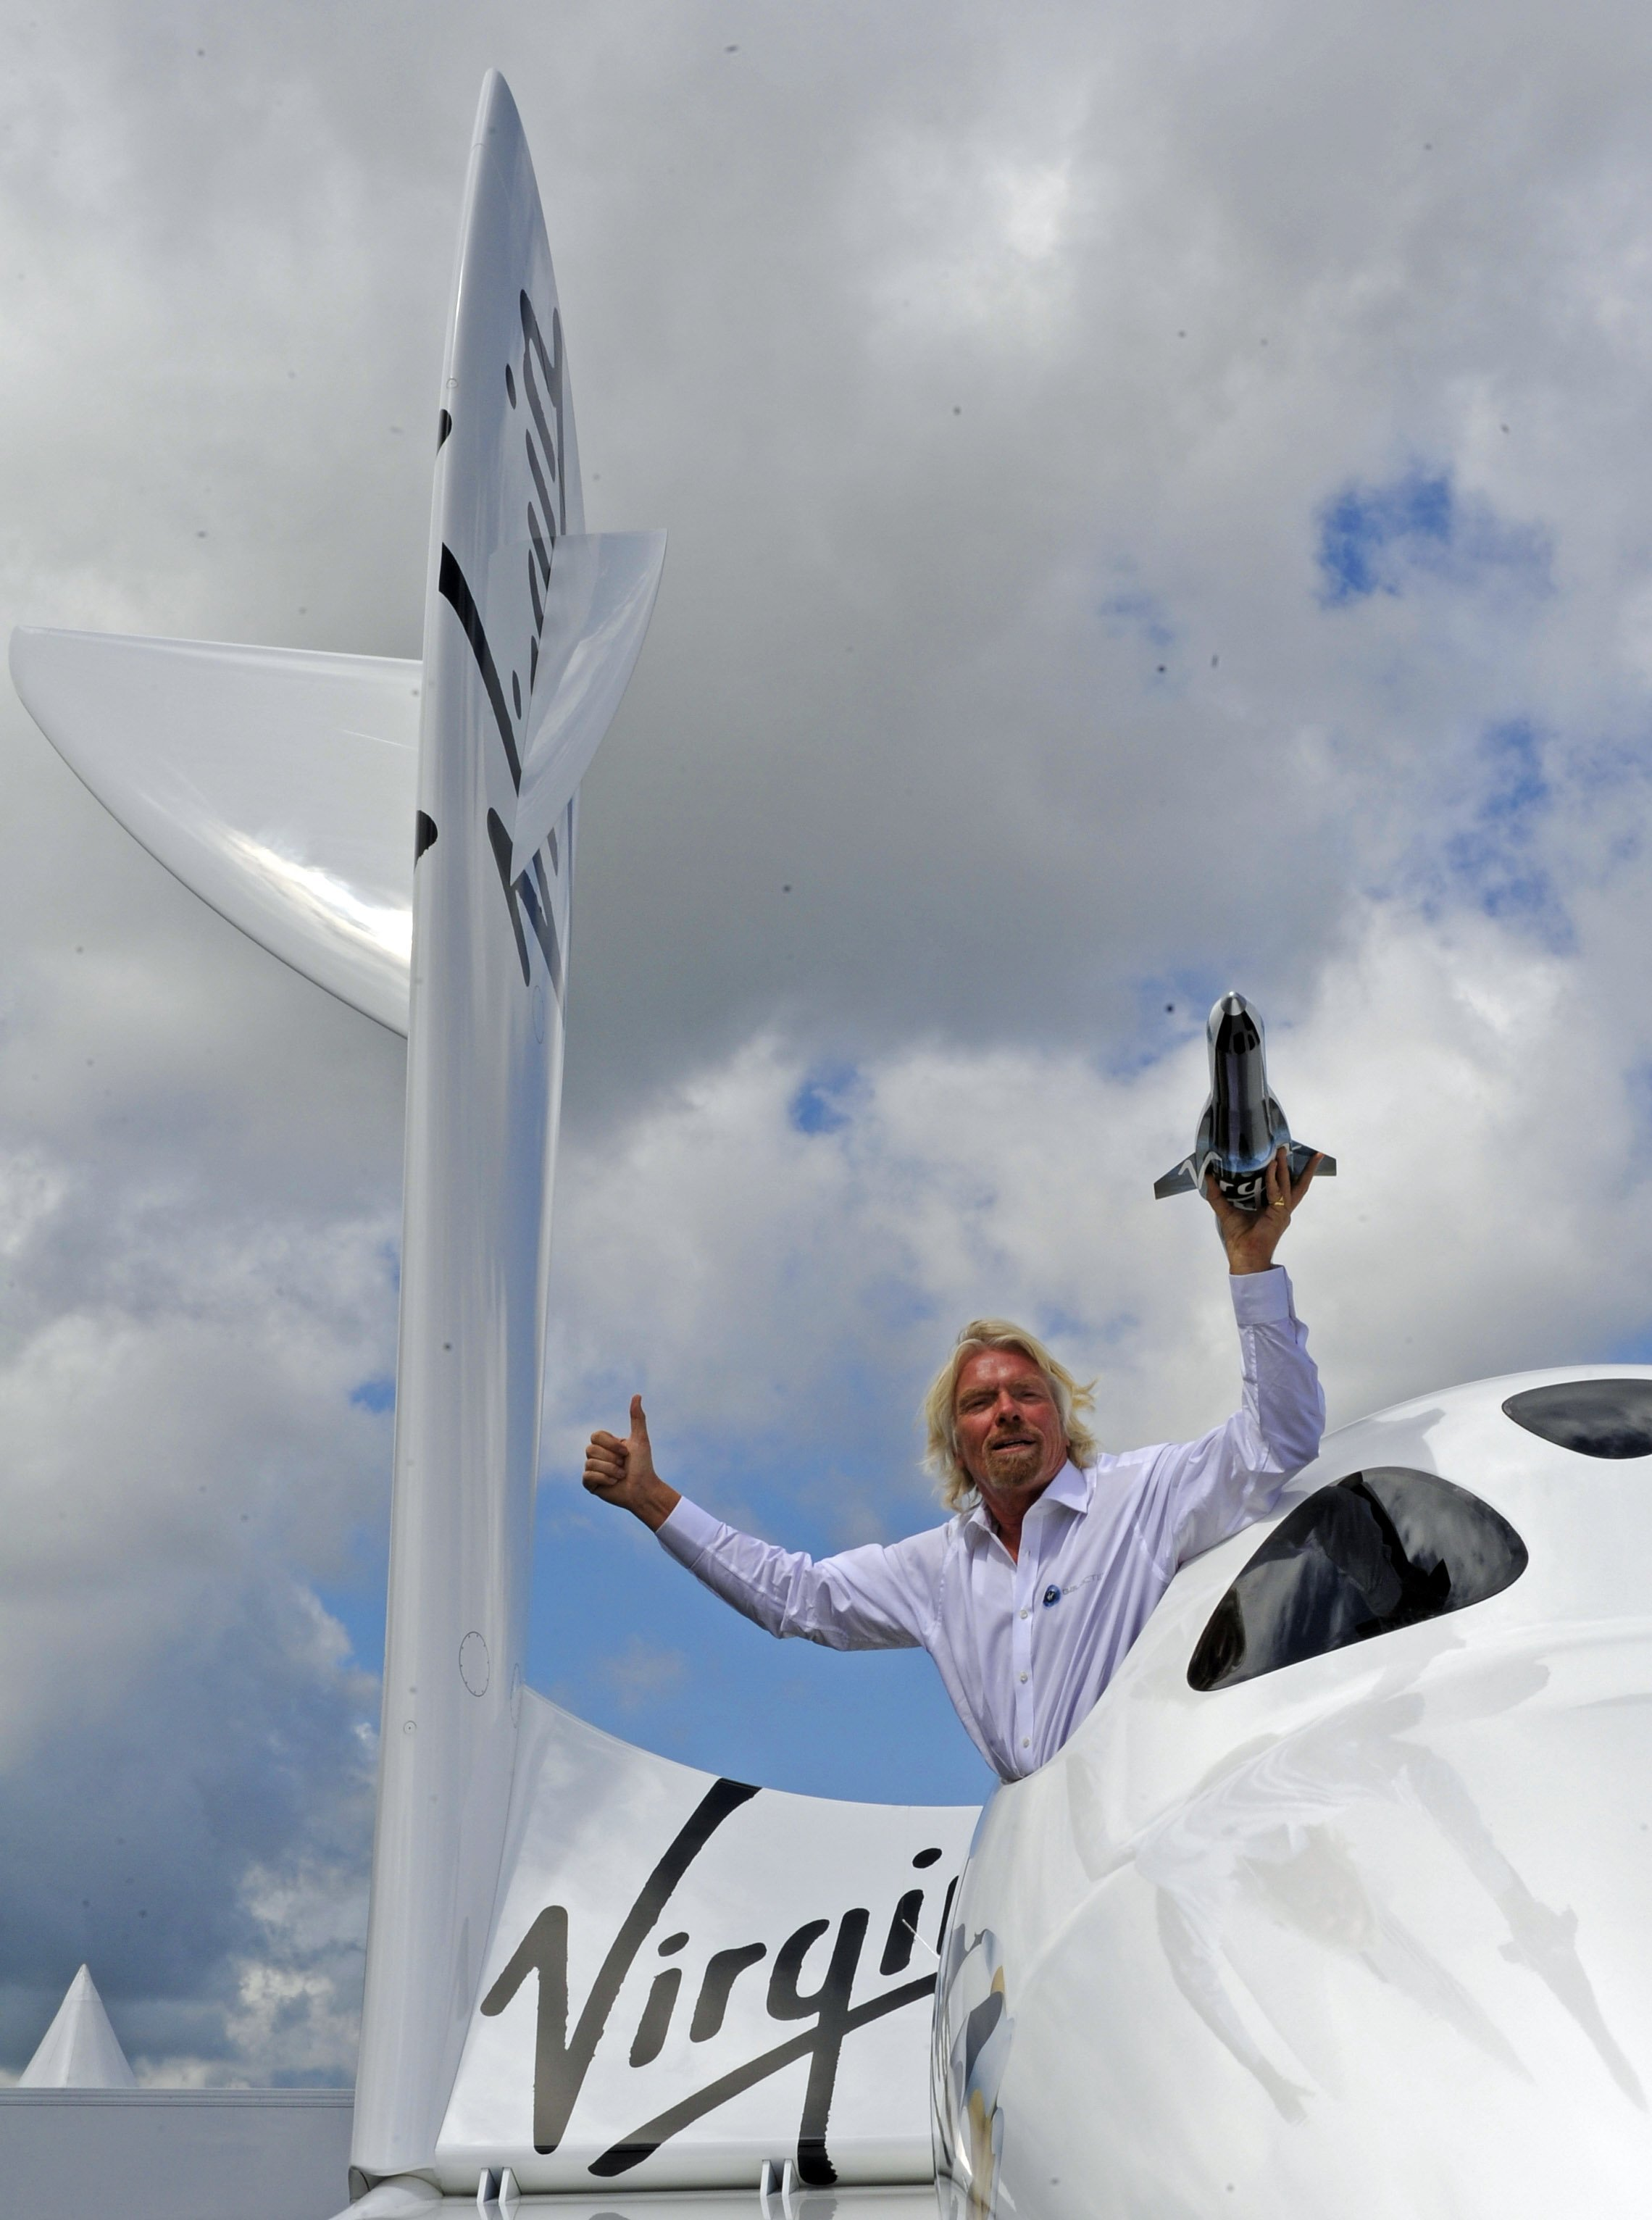 Richard Branson is riding out Hurricane Irma on his private island in the British Virgin Islands, despite it being at risk of taking a direct hit.